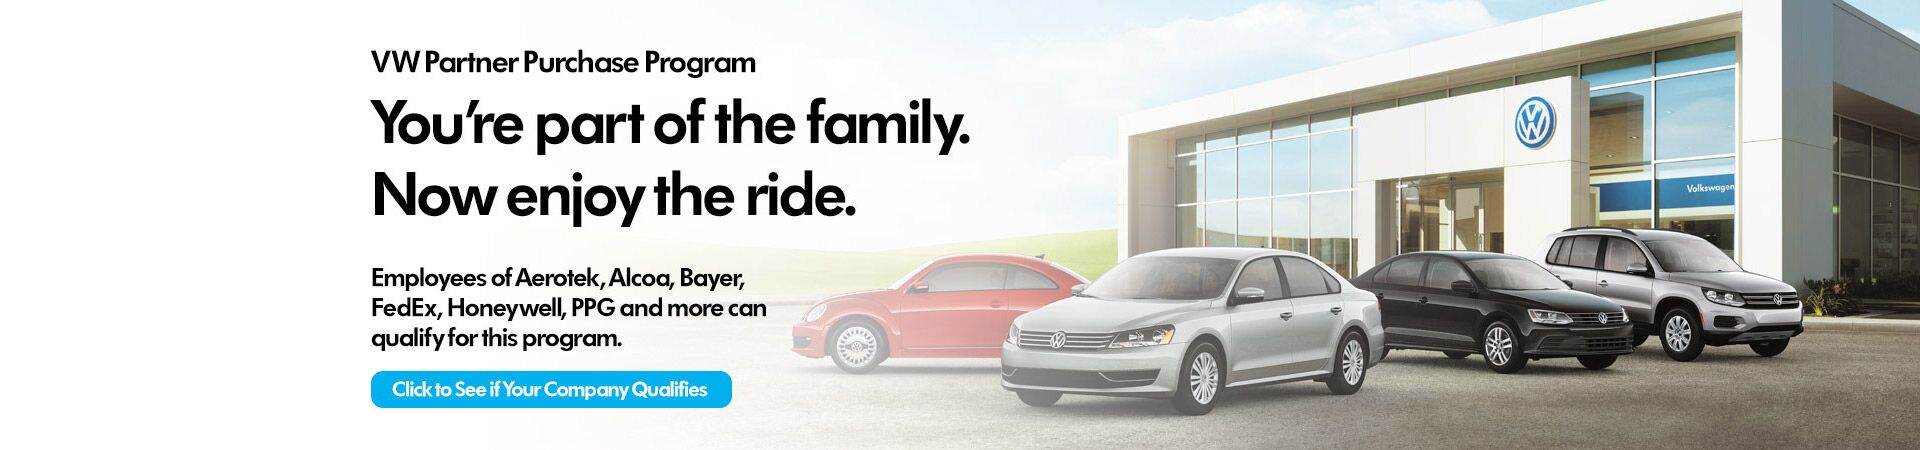 VW Partner Purchase Program